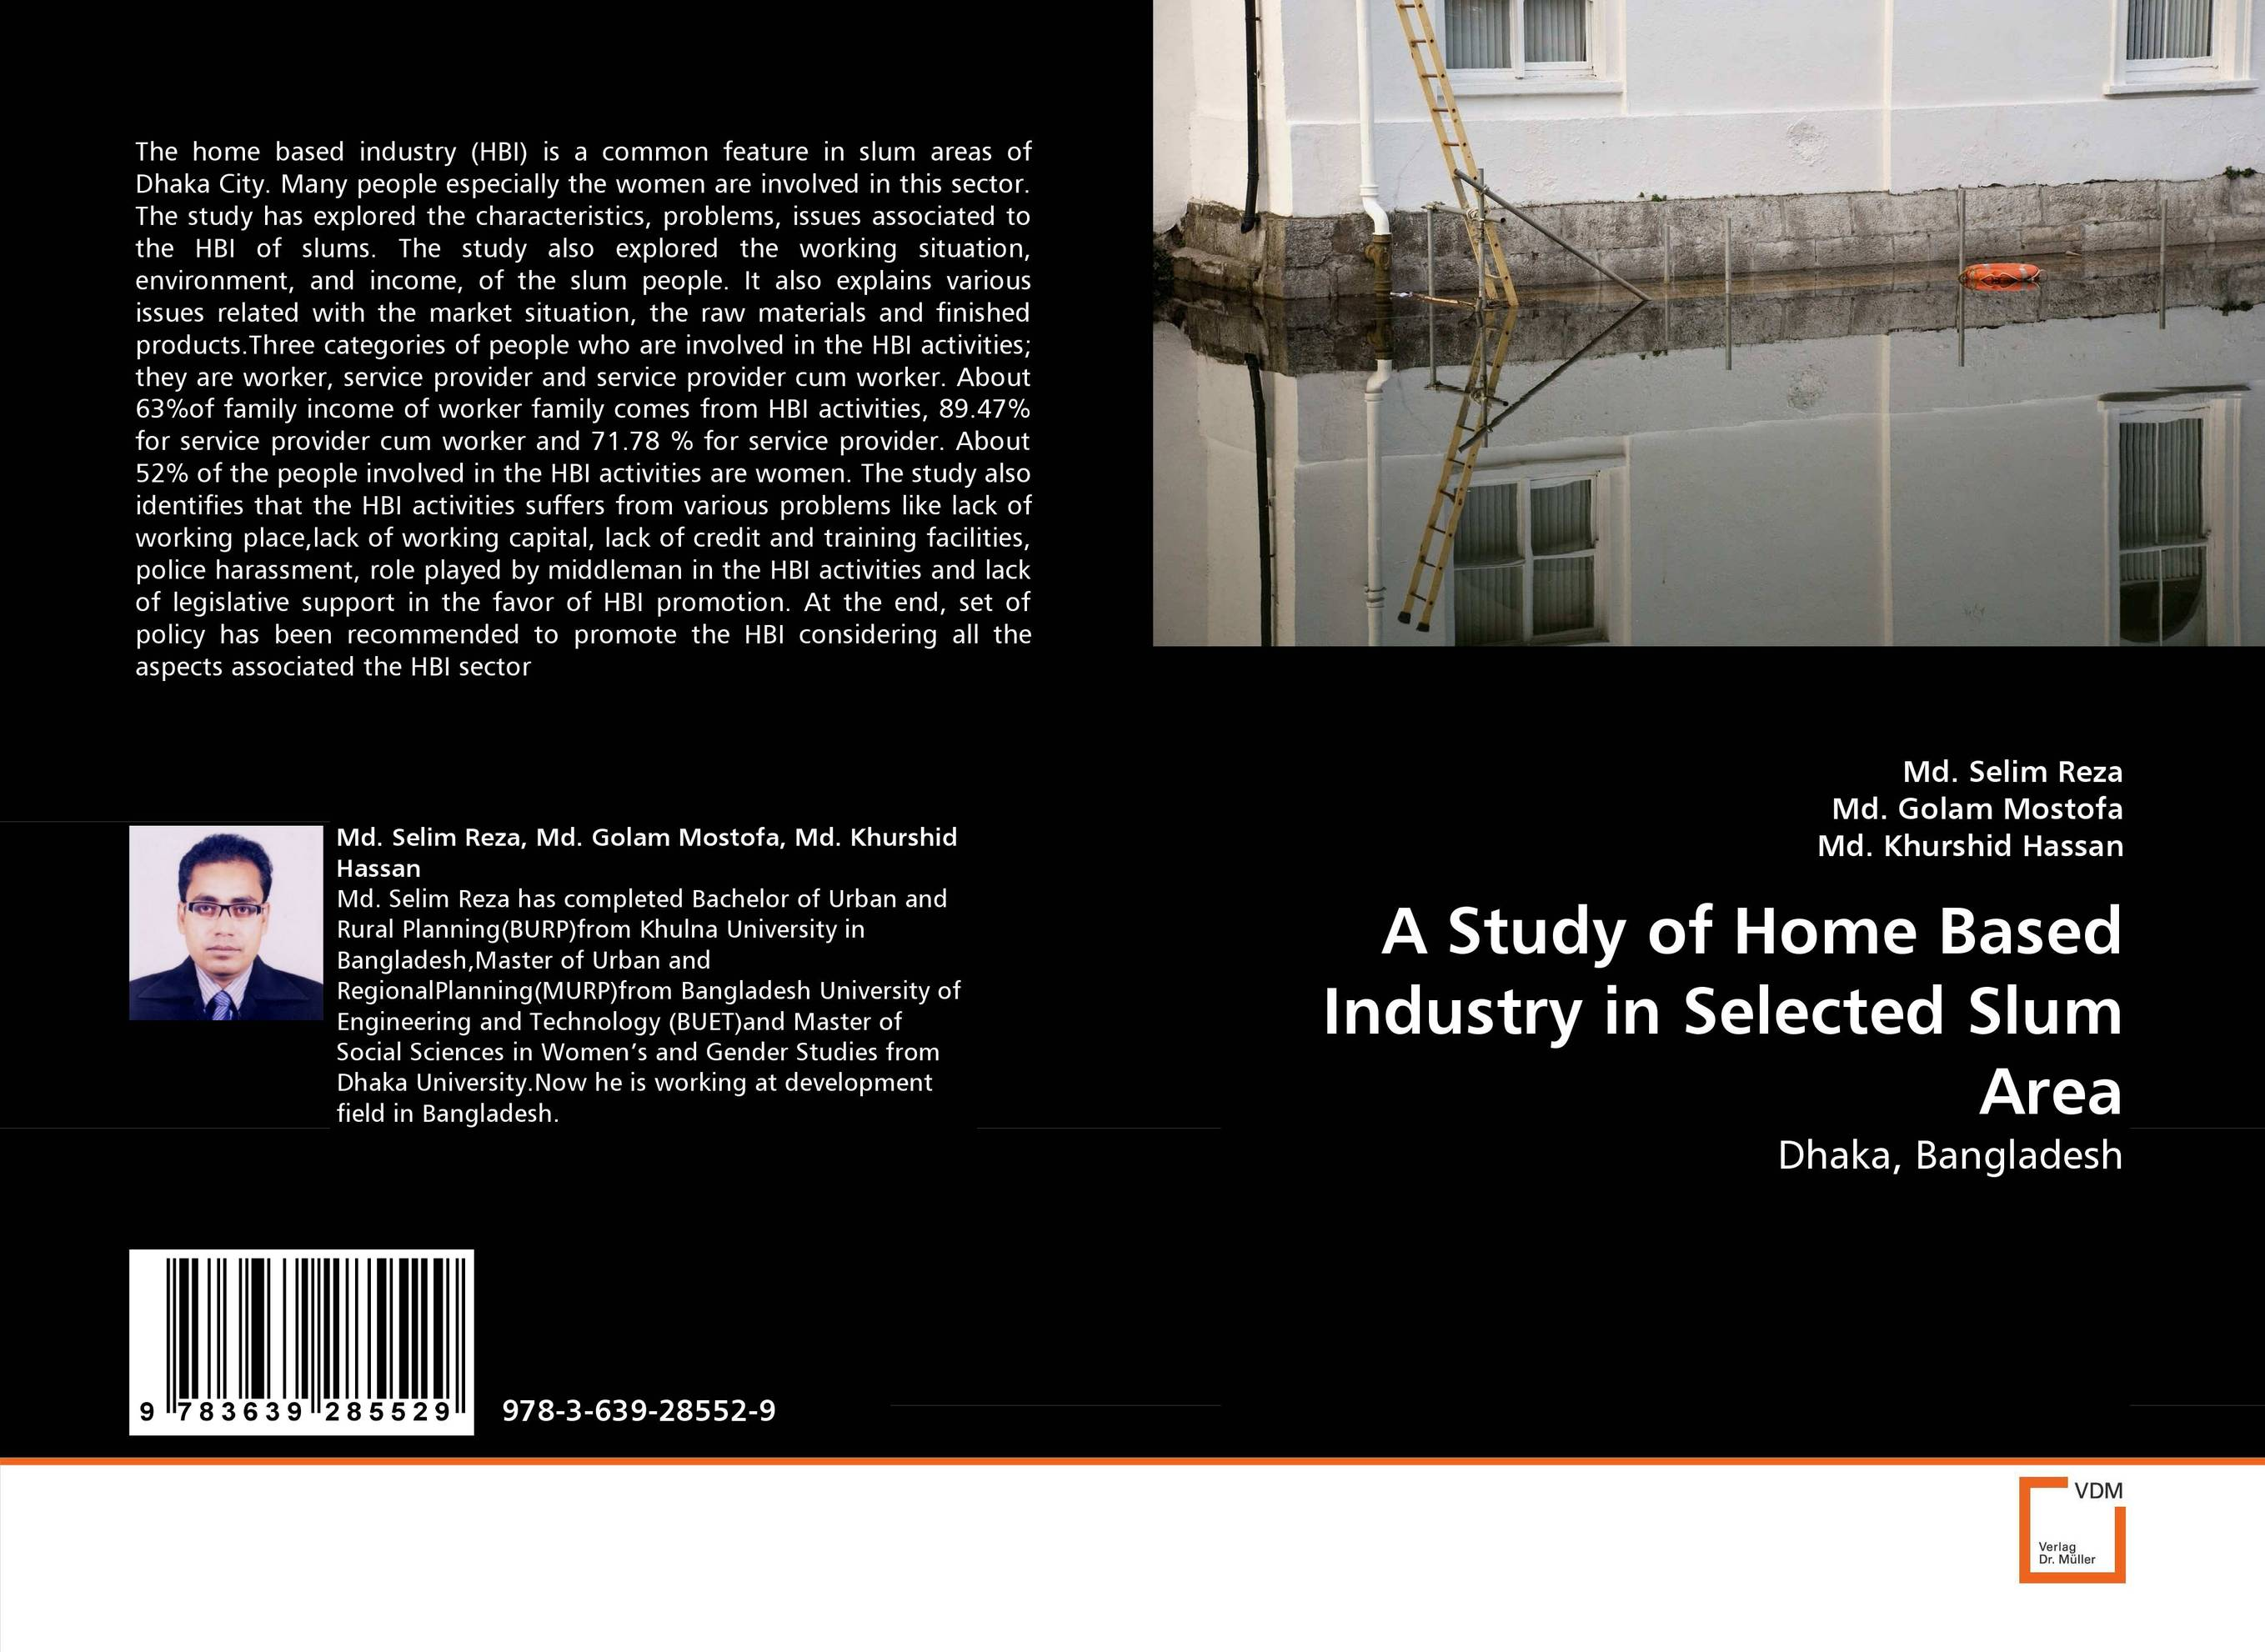 A Study of Home Based Industry in Selected Slum Area simon lack a bonds are not forever the crisis facing fixed income investors